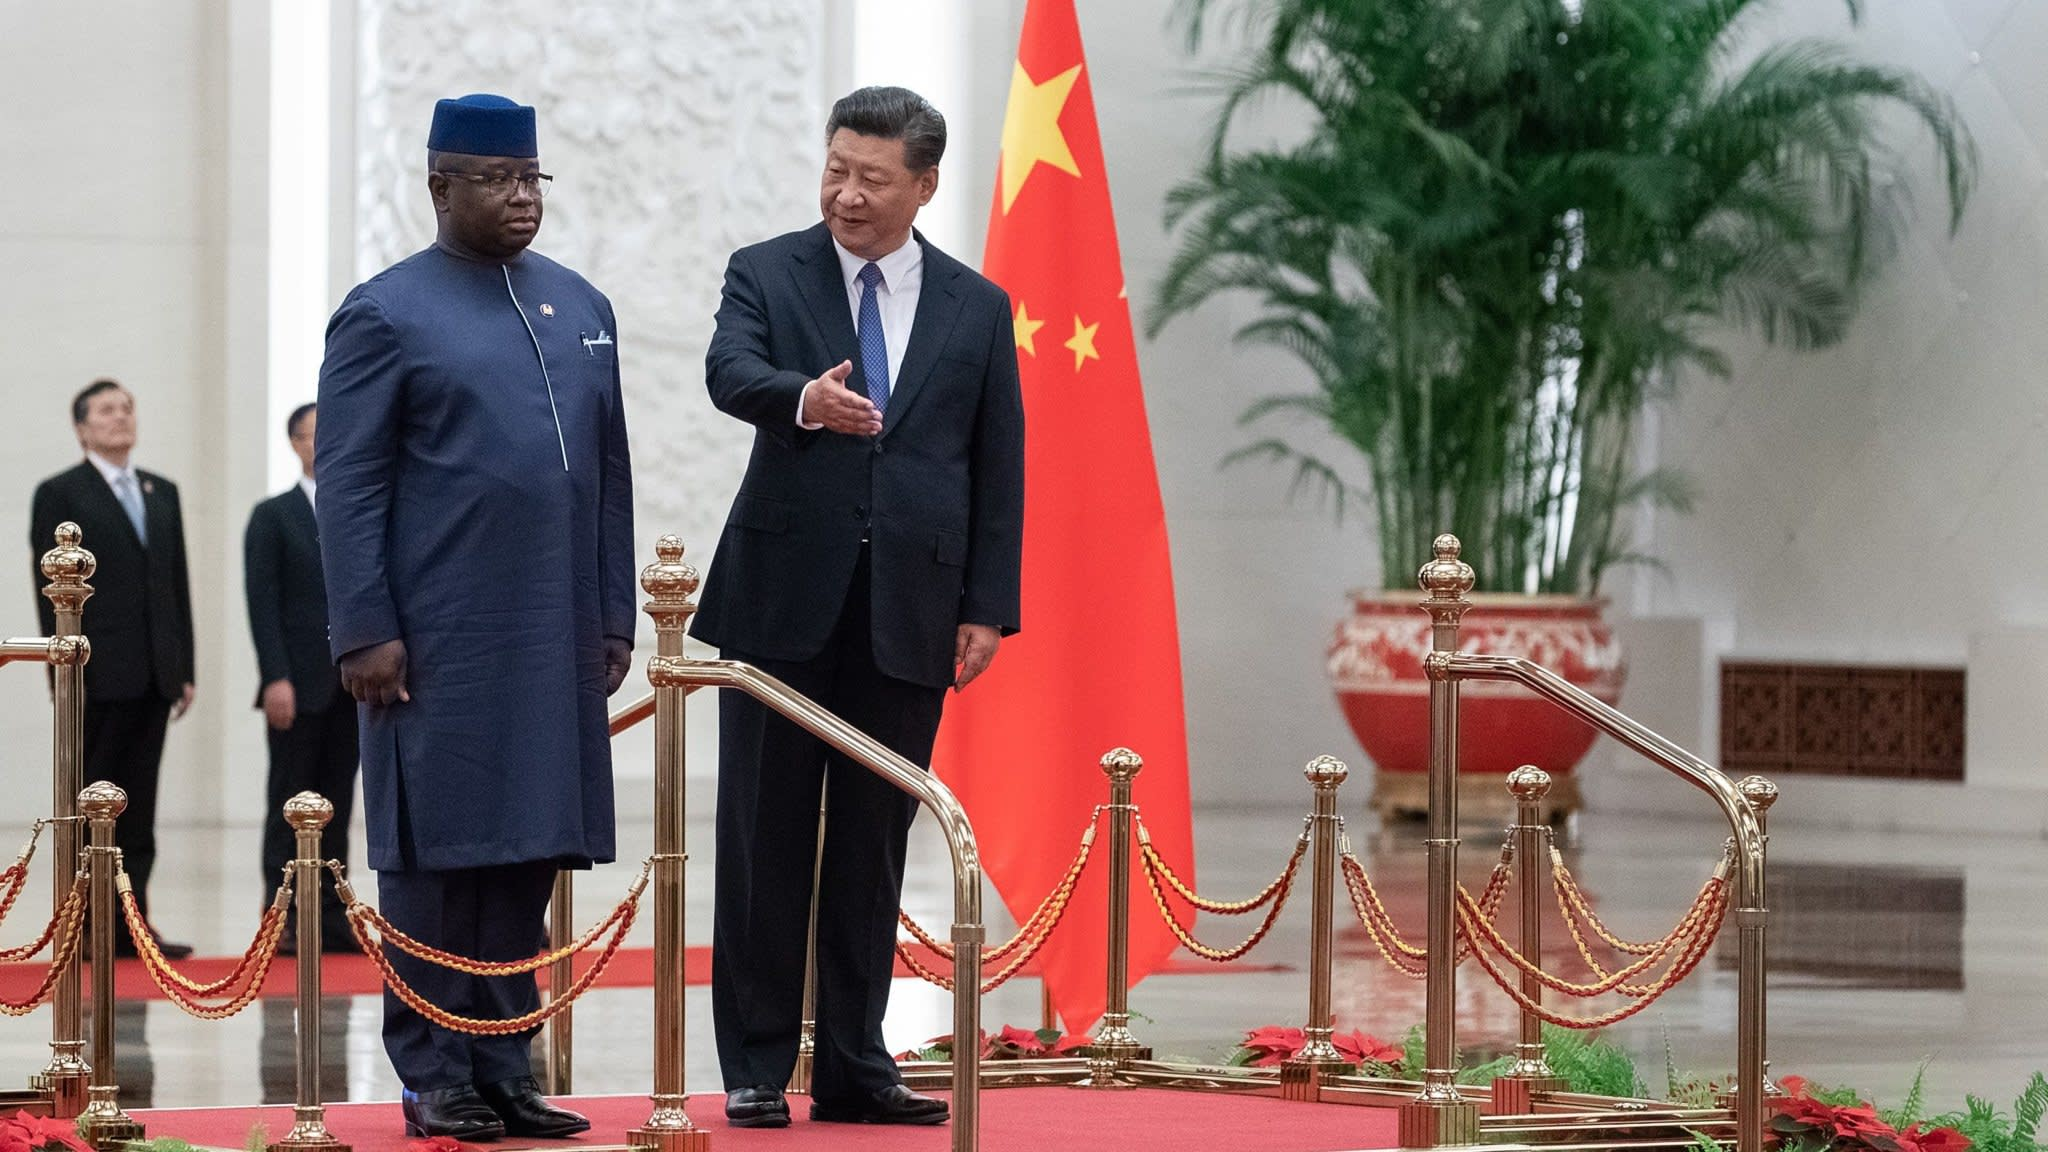 Africa seeks China deals that will bring jobs and skills